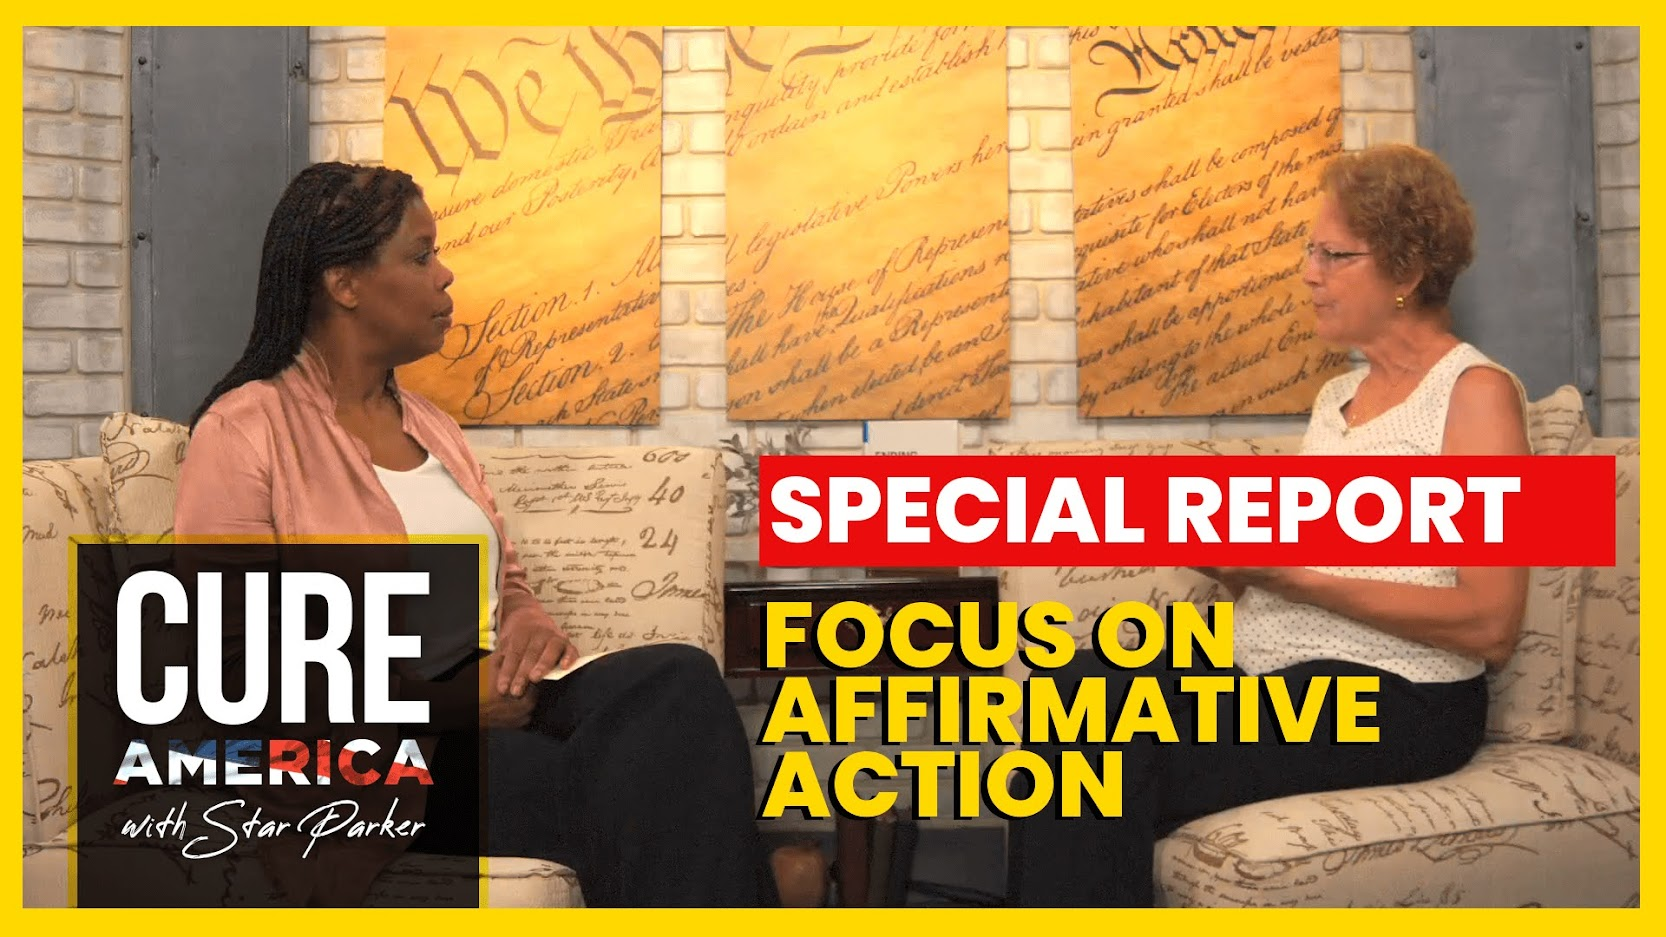 Special Report: Focus on Affirmative Action